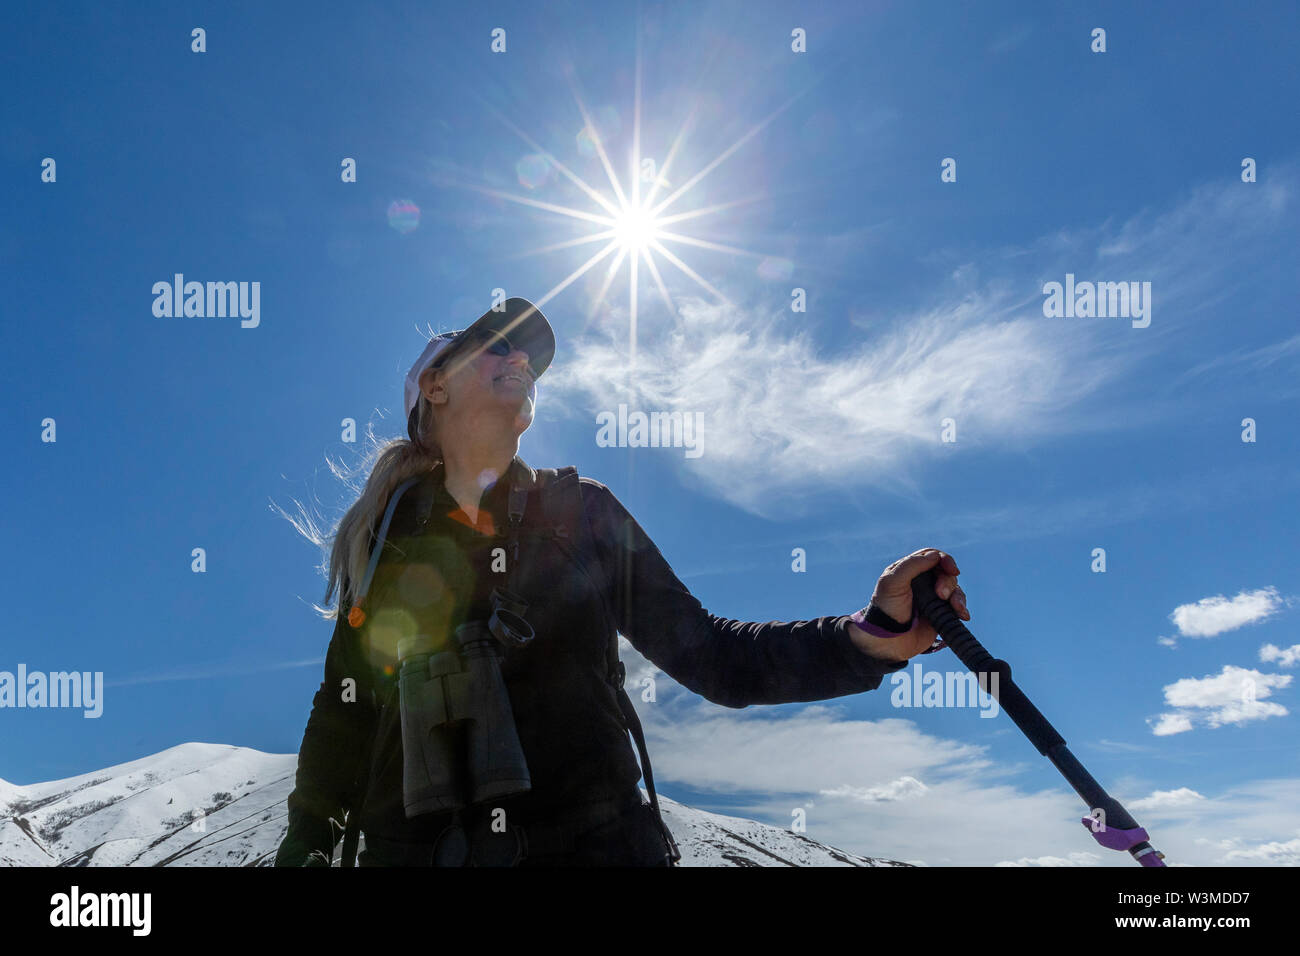 Low angle view of hiker on snow covered mountain - Stock Image